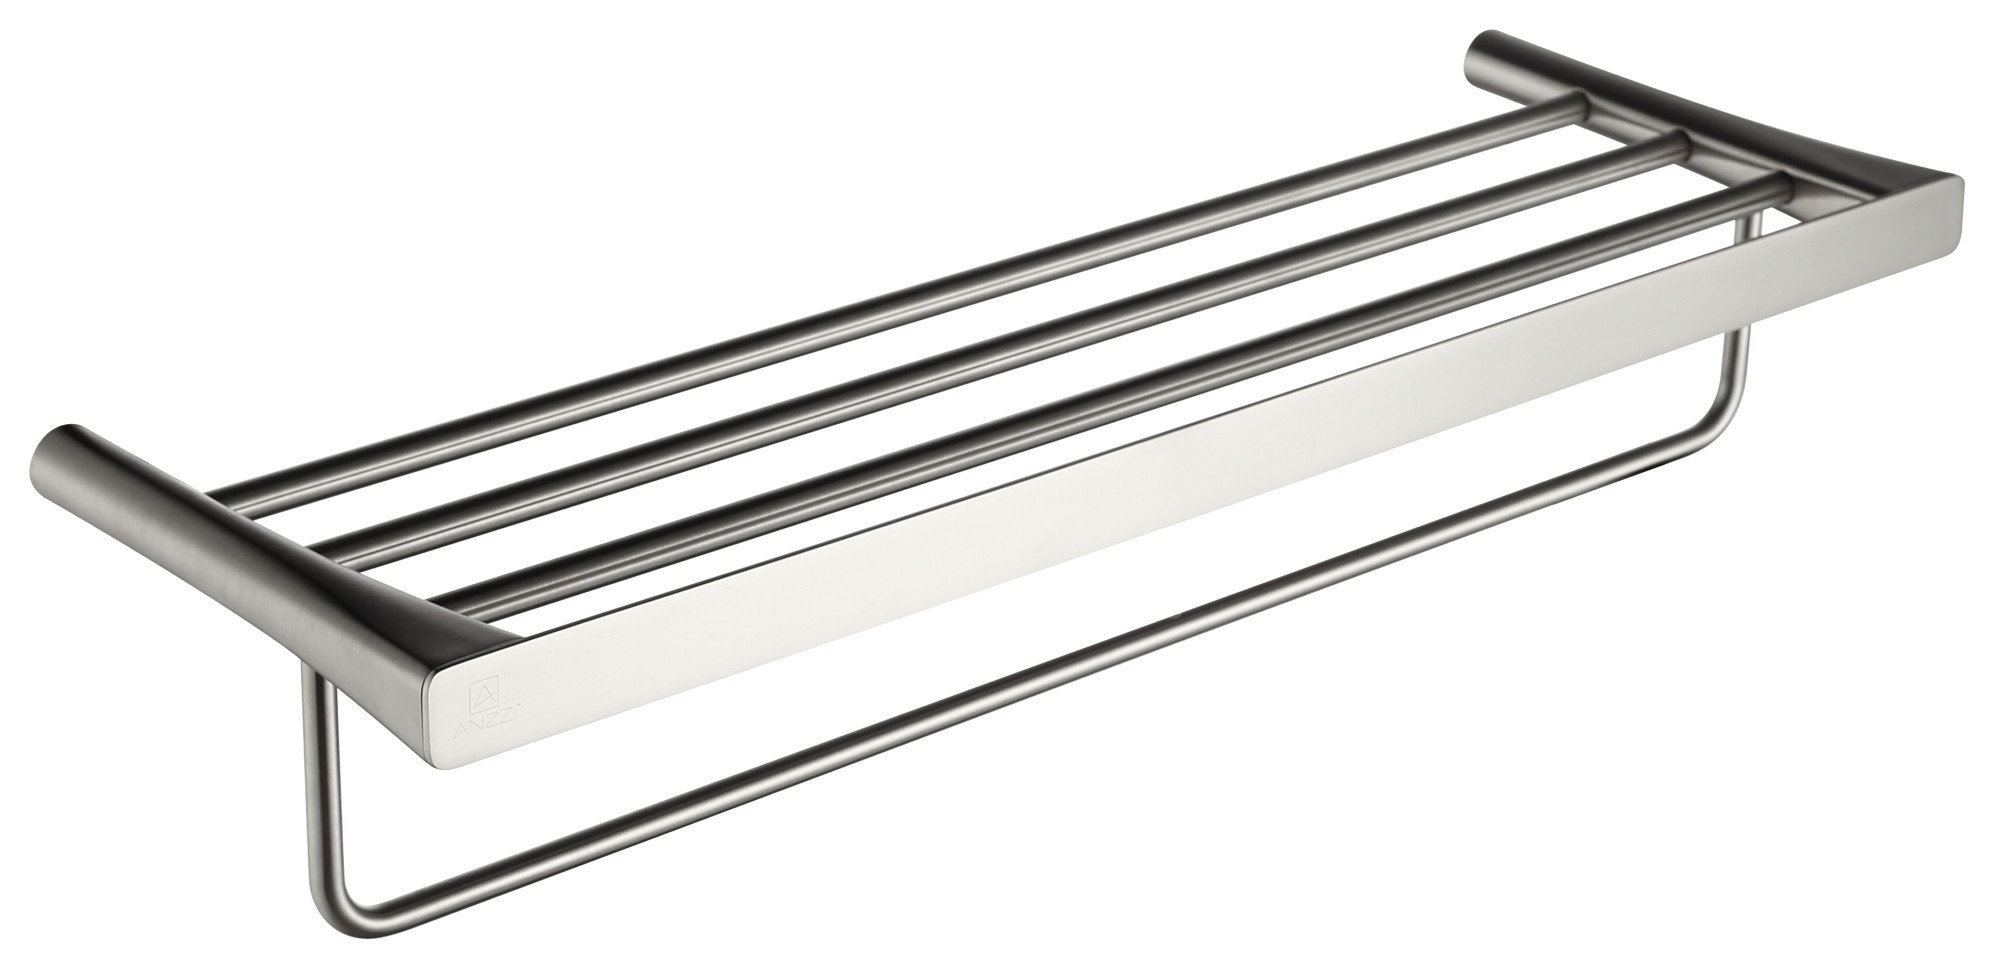 25.13'' Towel Bar - Brushed Nickel - Caster 3 Series AC-AZ058BN - ANZZI